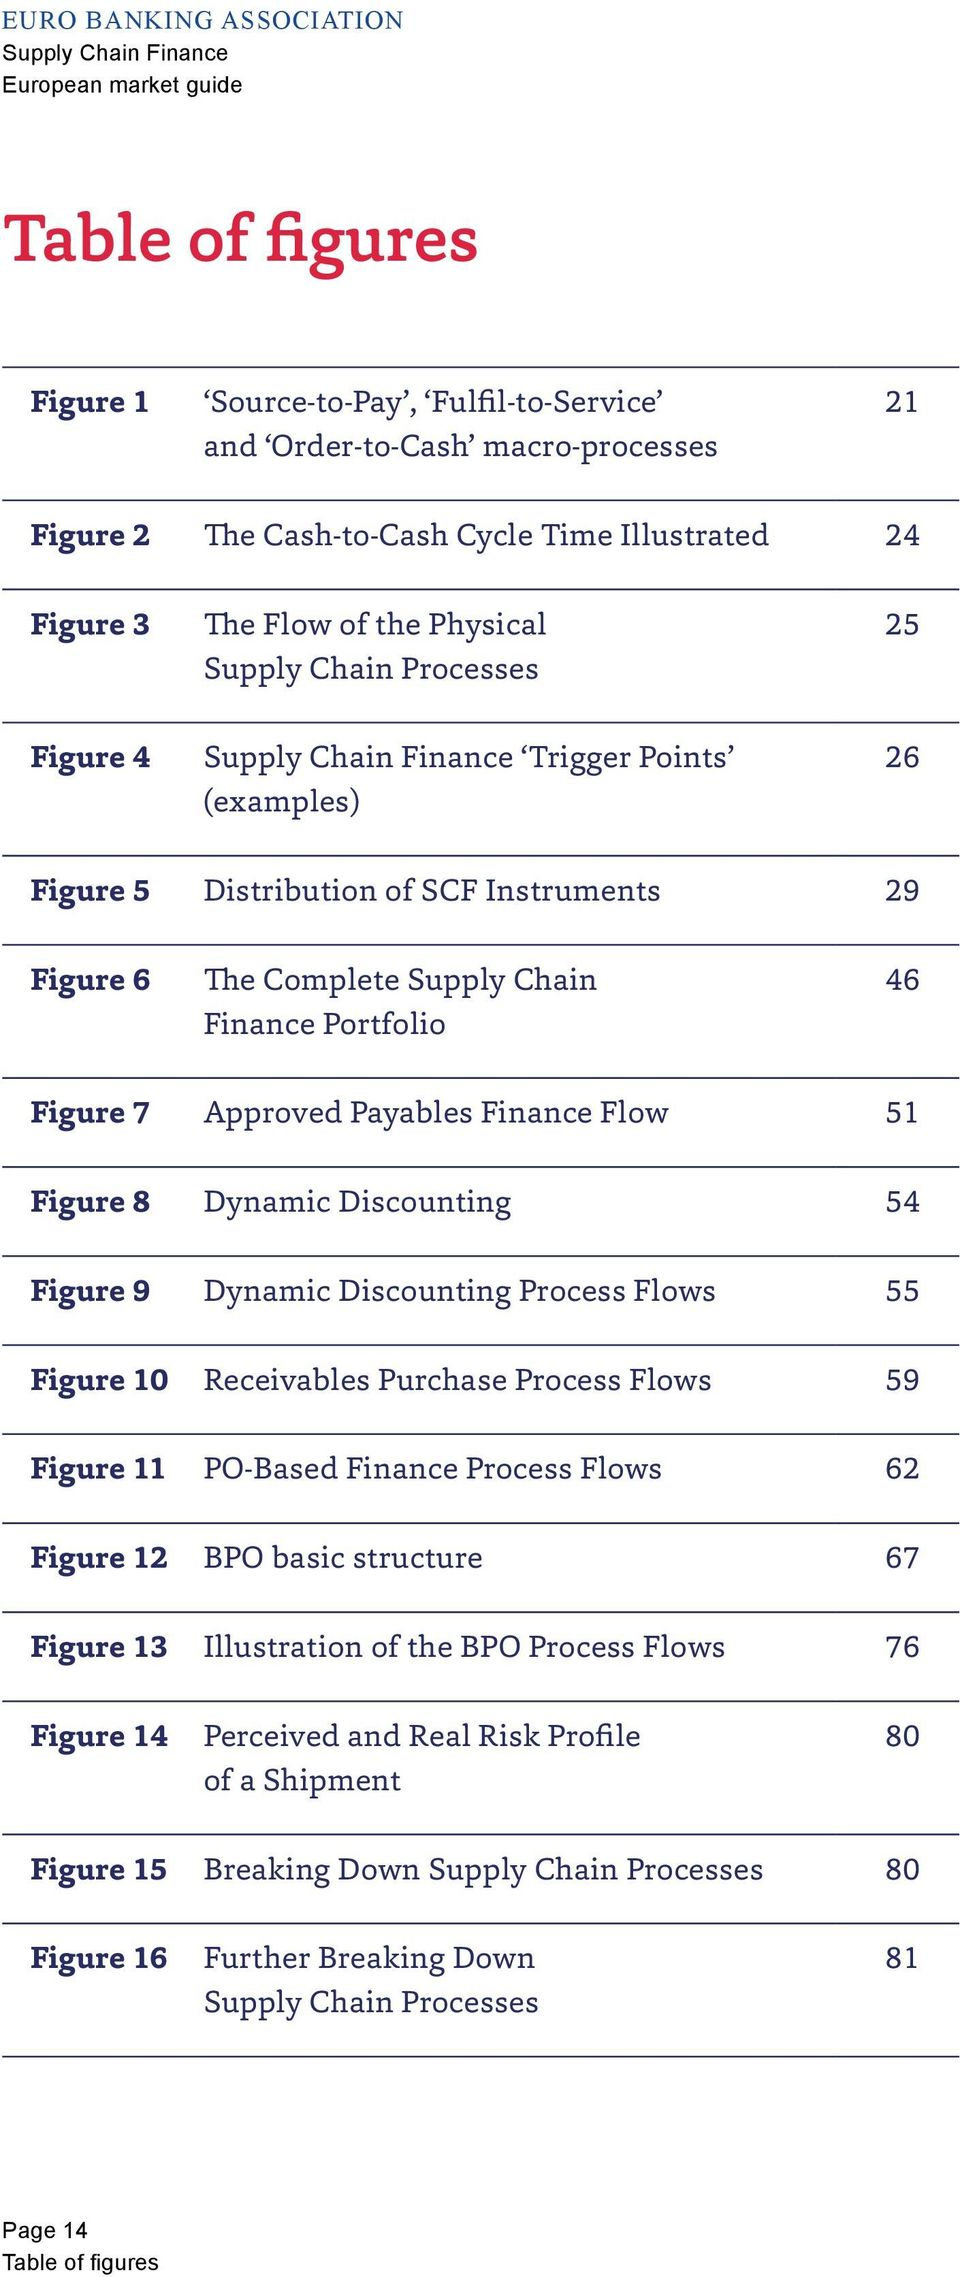 Figure 8 Dynamic Discounting 54 Figure 9 Dynamic Discounting Process Flows 55 Figure 10 Receivables Purchase Process Flows 59 Figure 11 PO-Based Finance Process Flows 62 Figure 12 BPO basic structure